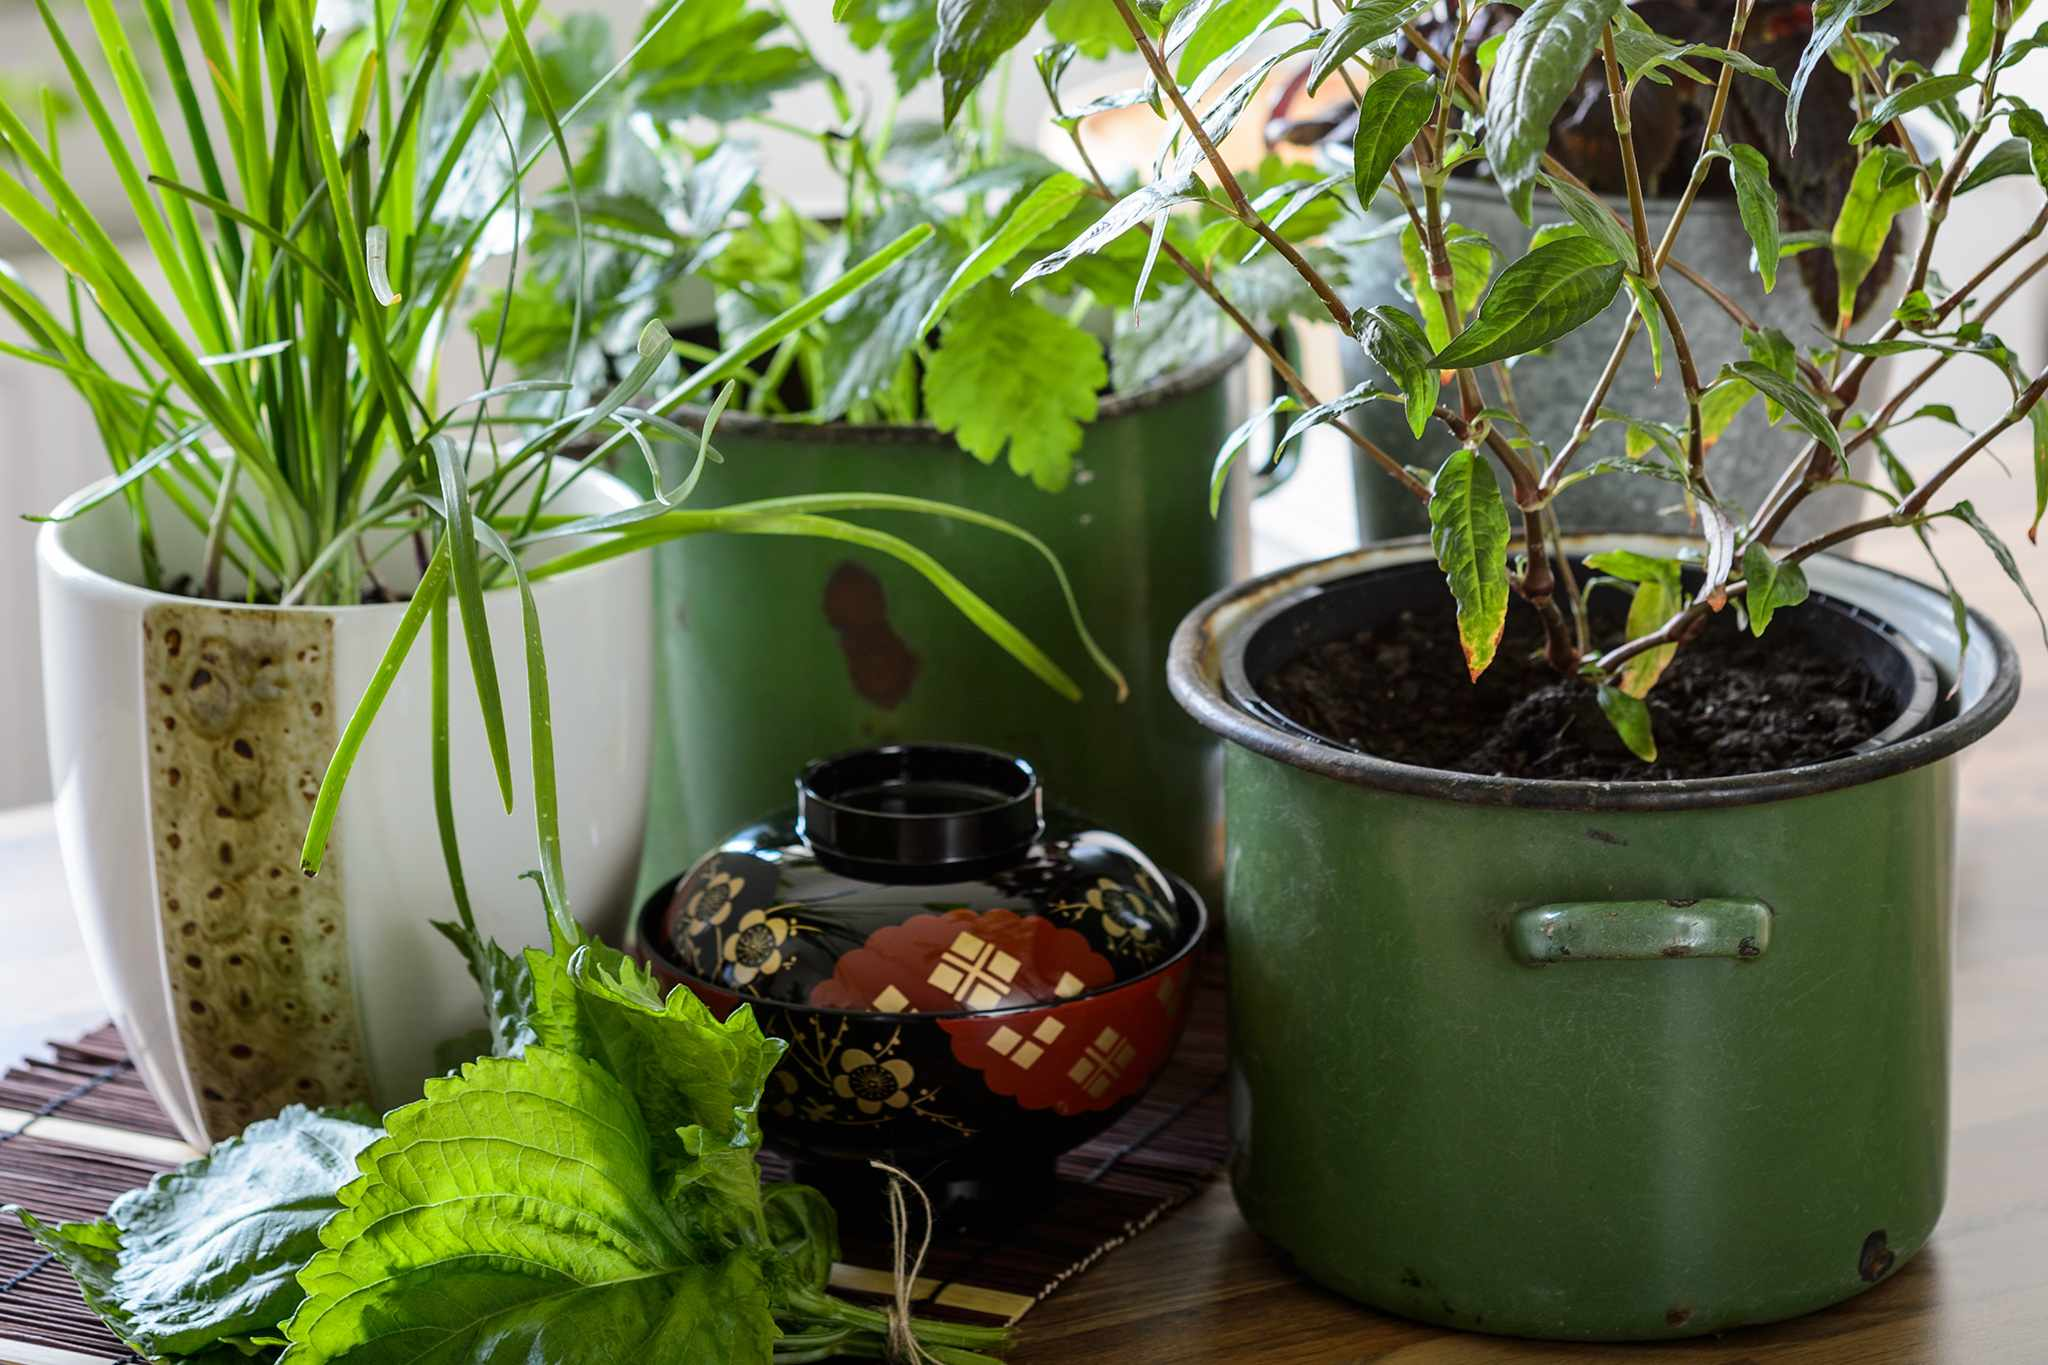 Herbs for Chinese, Japanese and southeast Asian dishes